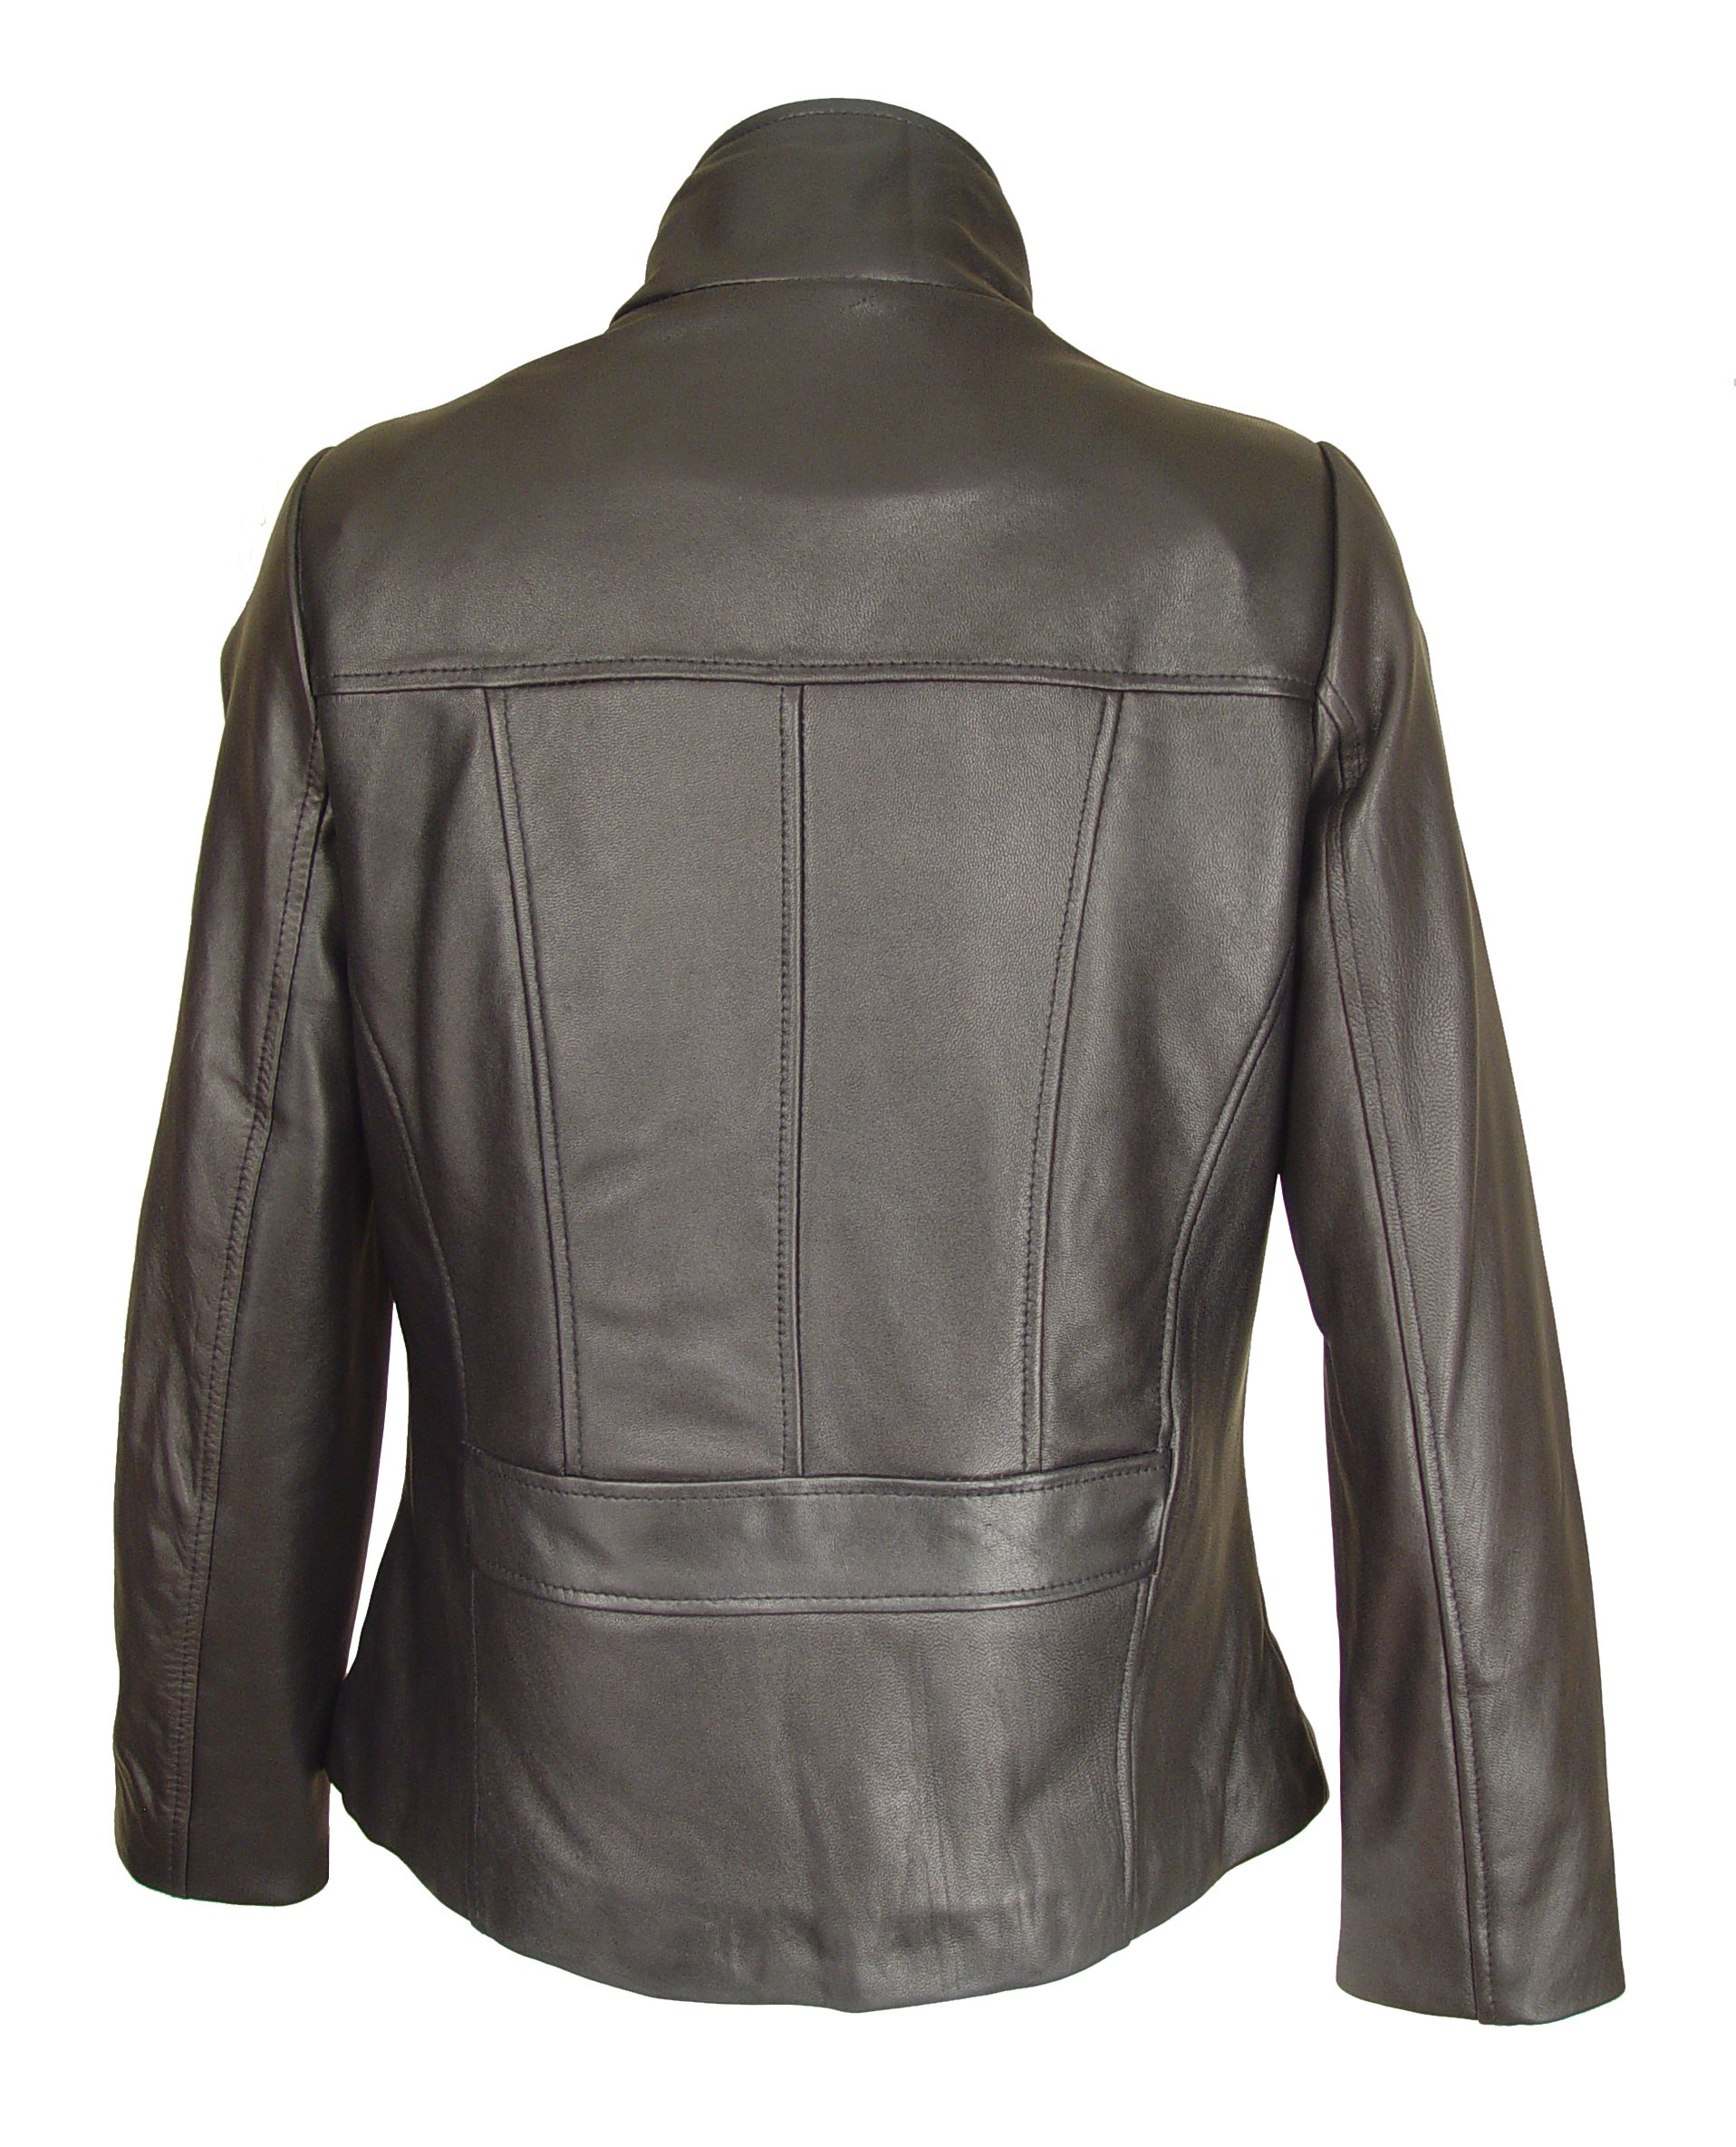 Nettailor 4082 Leather Moto Jackets Womens Genuine Fine Soft Lamb by Paccilo (Image #5)